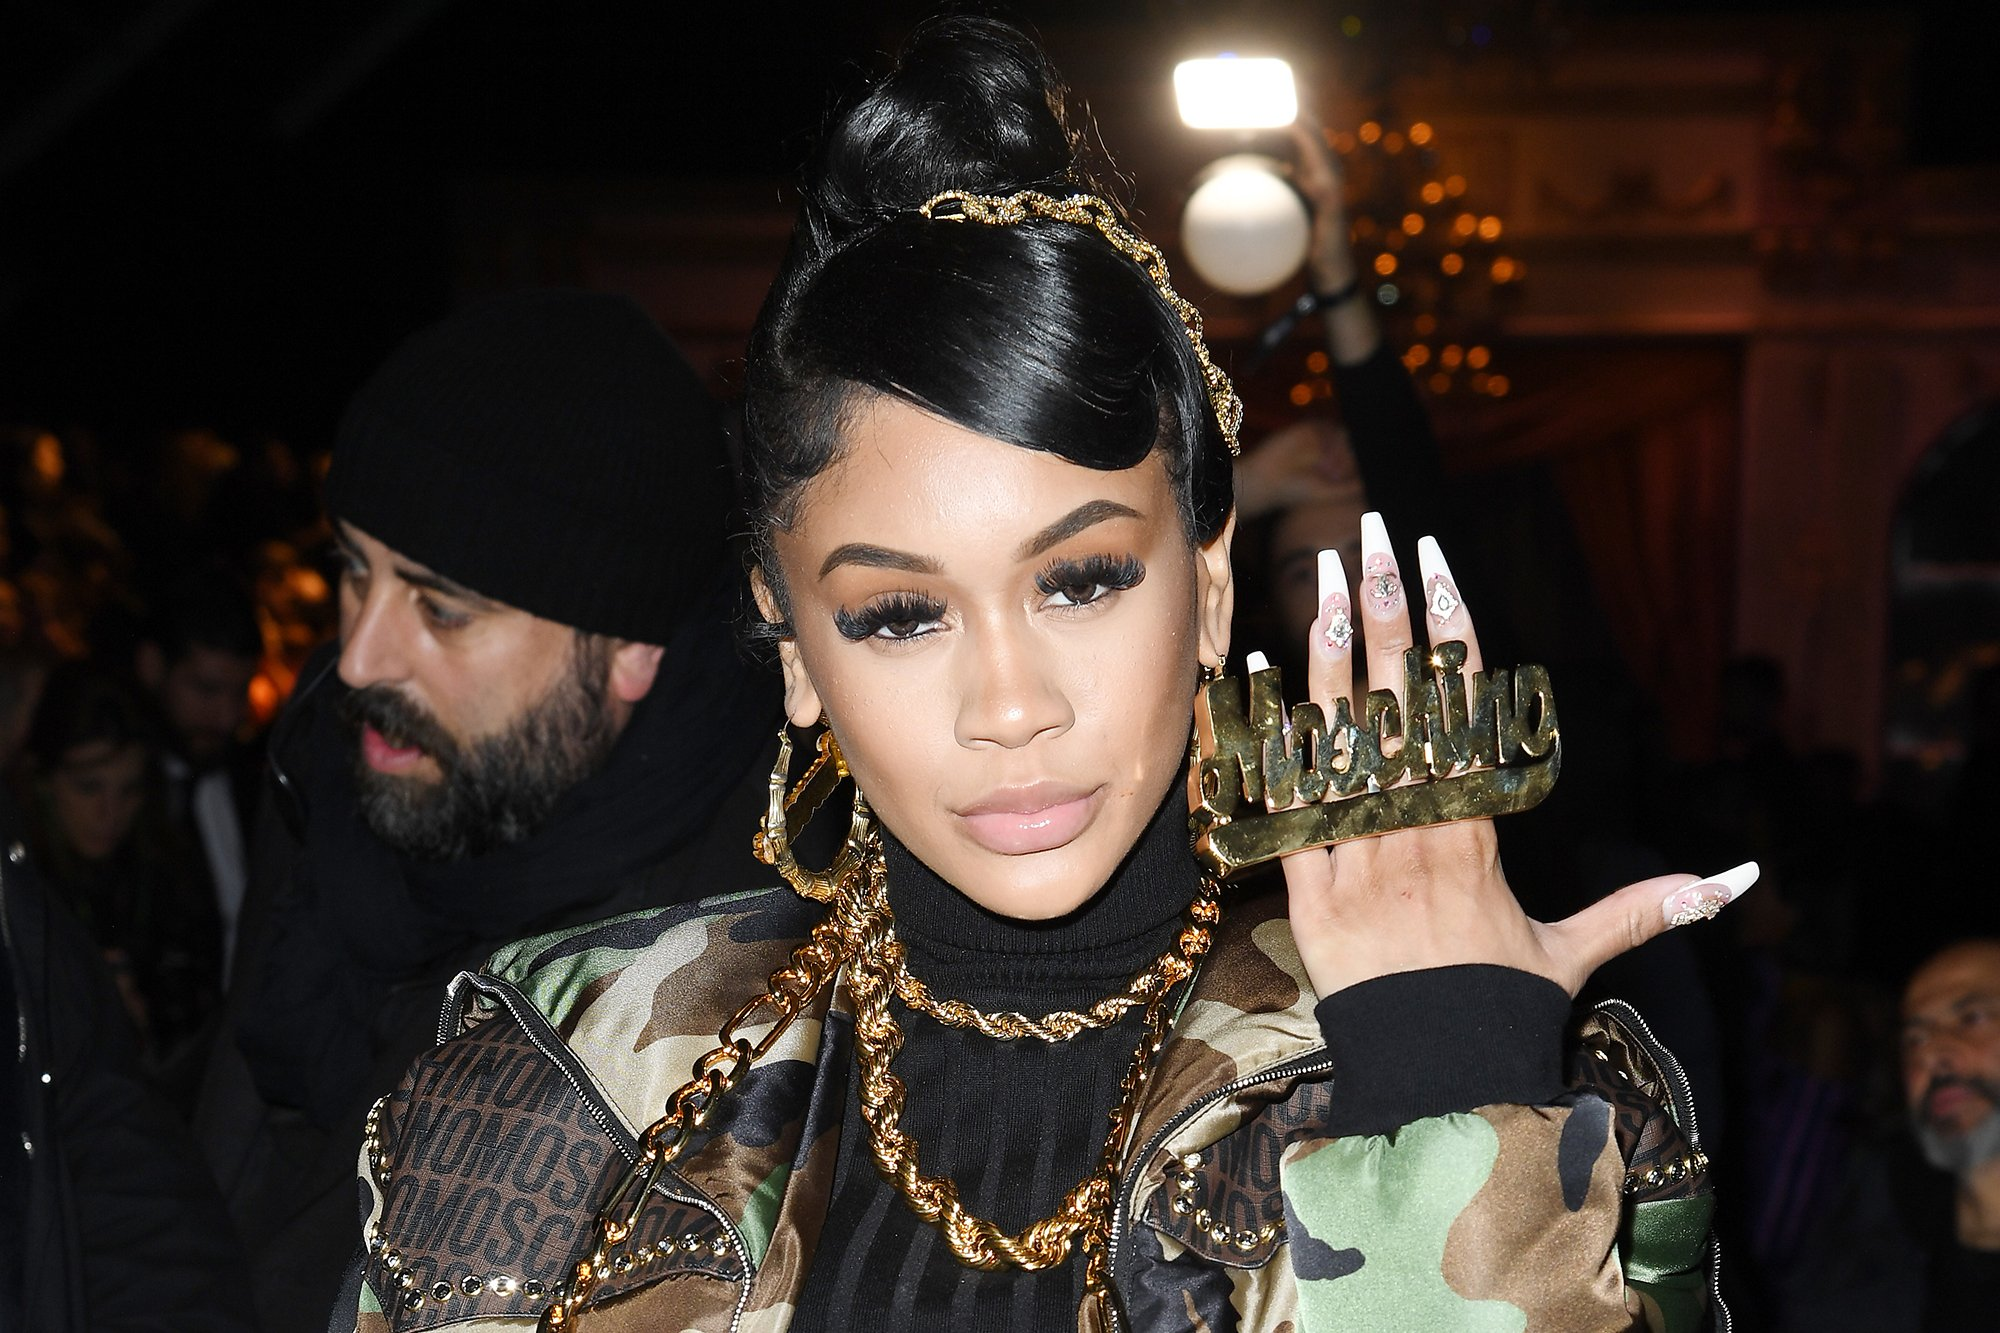 Saweetie Says She's Disappointed With Her Label – Here's What Happened